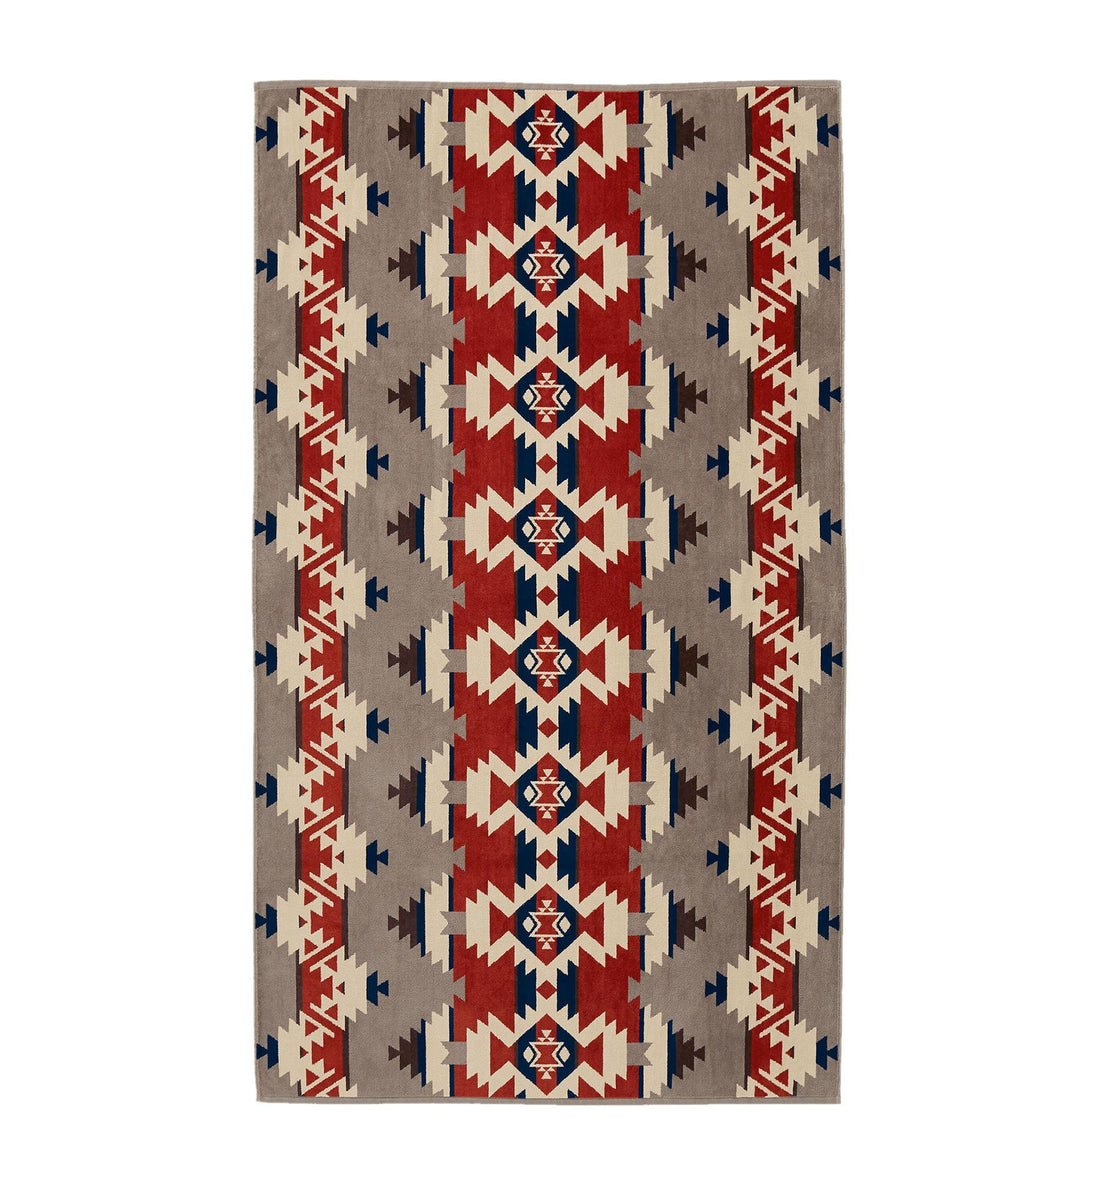 Pendleton Woolen Mills Oversized Jacquard Towel - Mountain Majesty - Outdoor Living/Travel - Iron and Resin